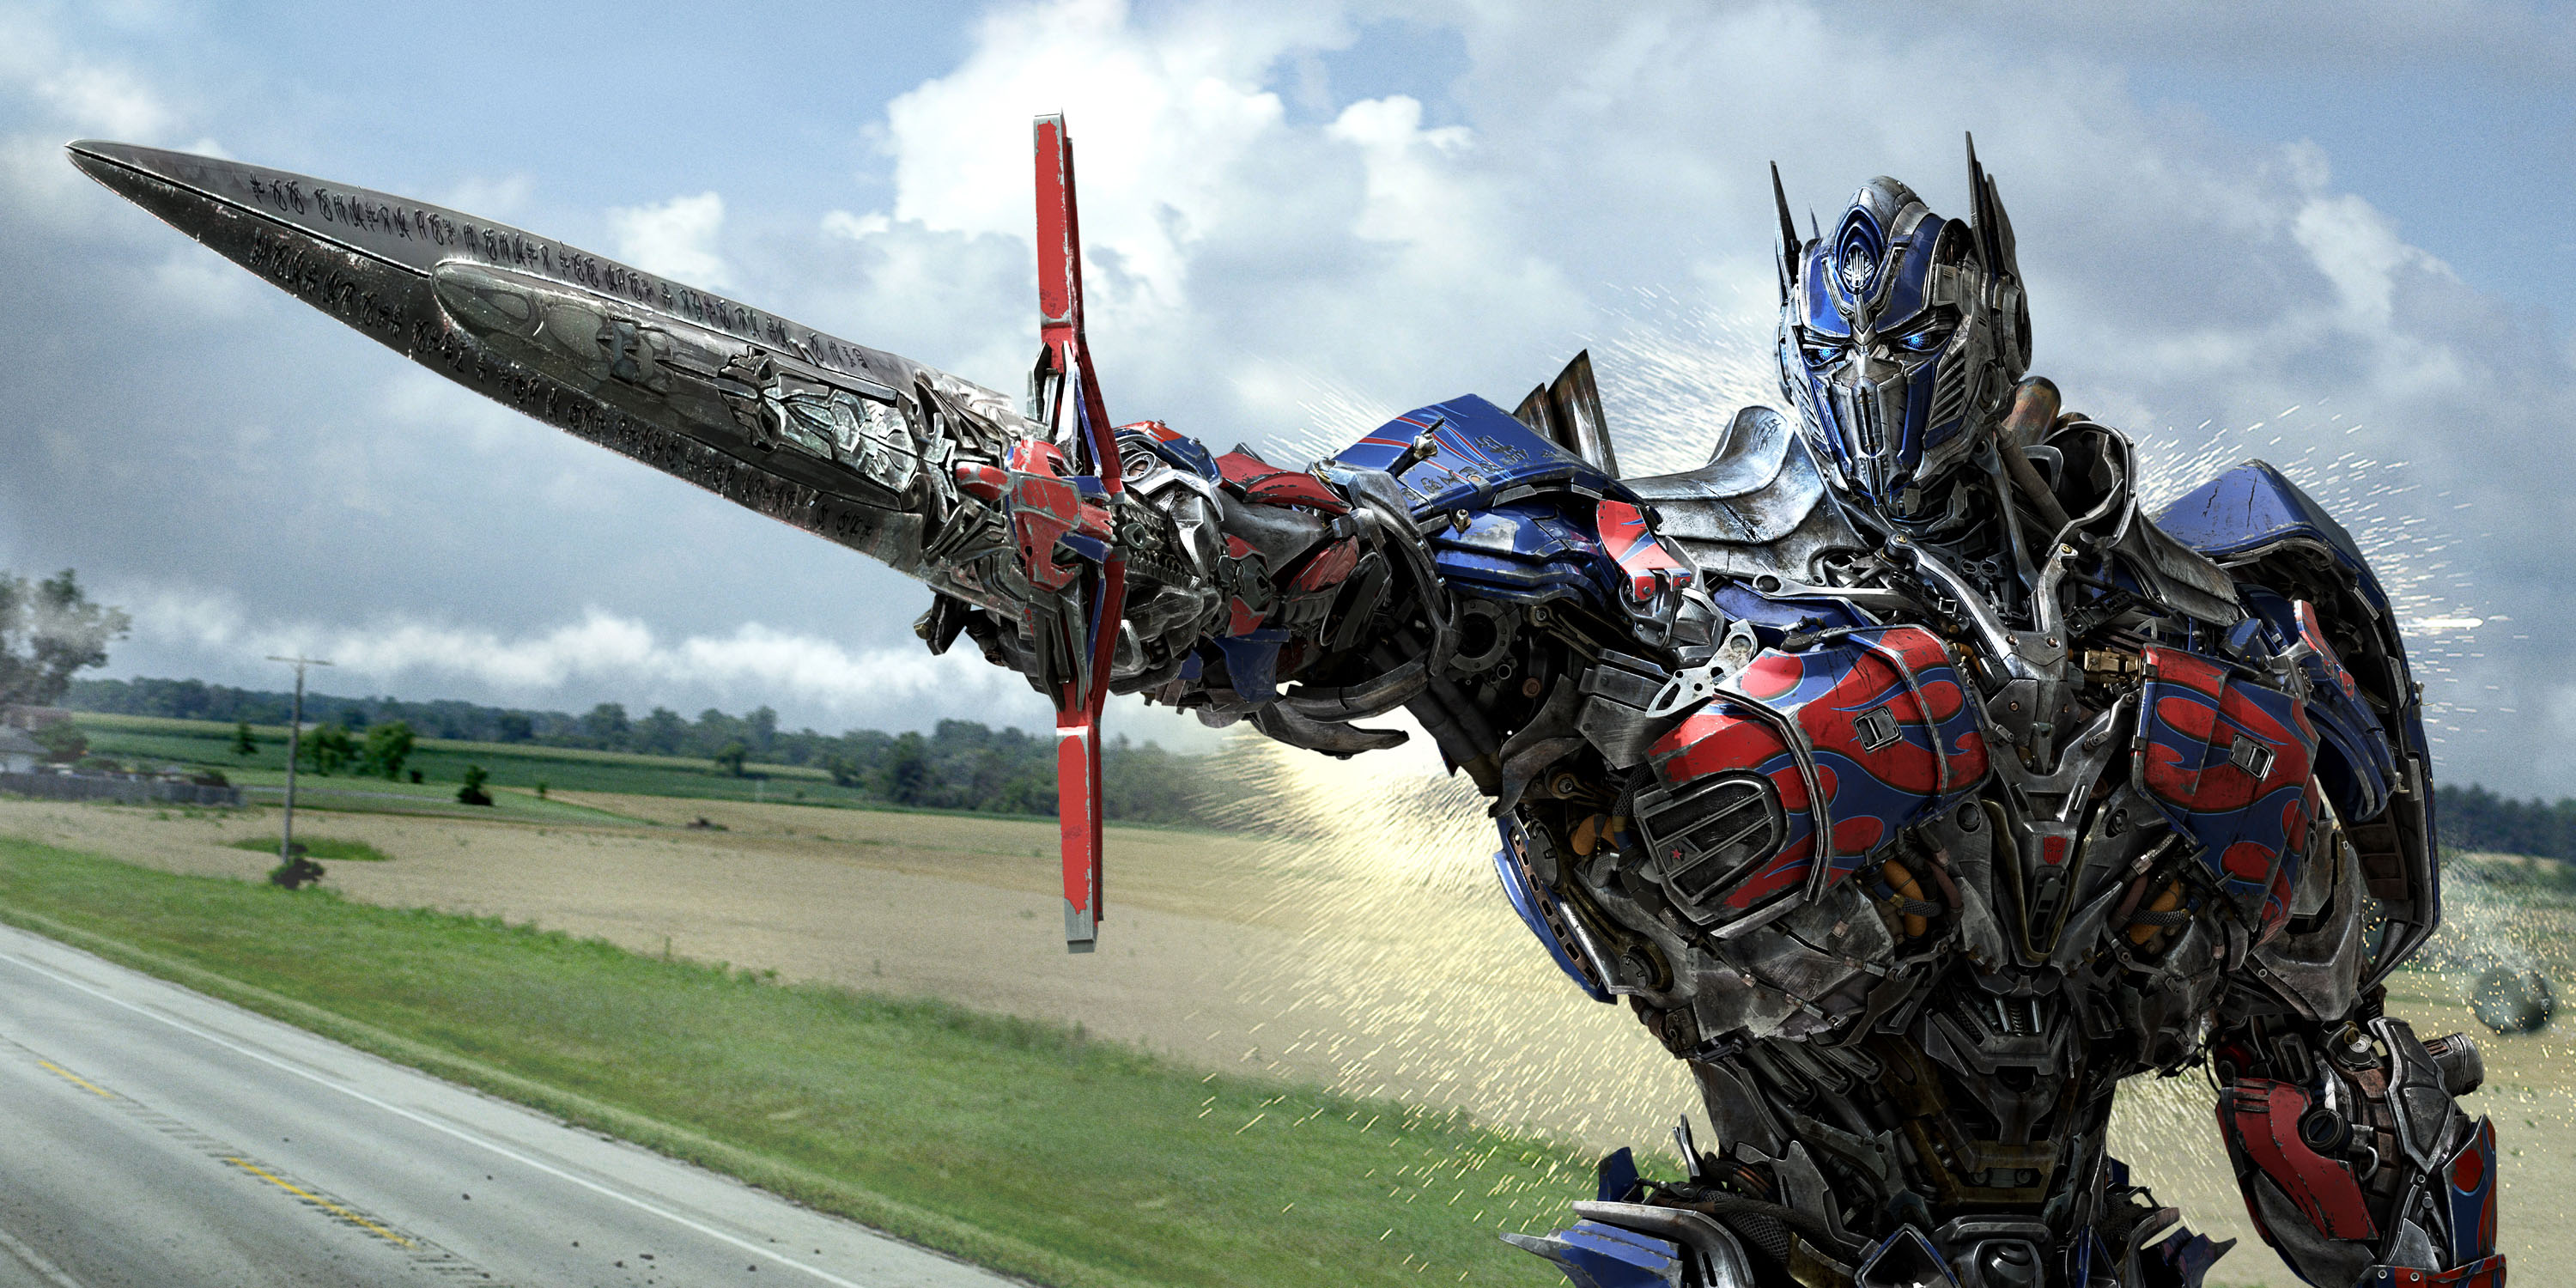 transformers4_boxoffice_1.